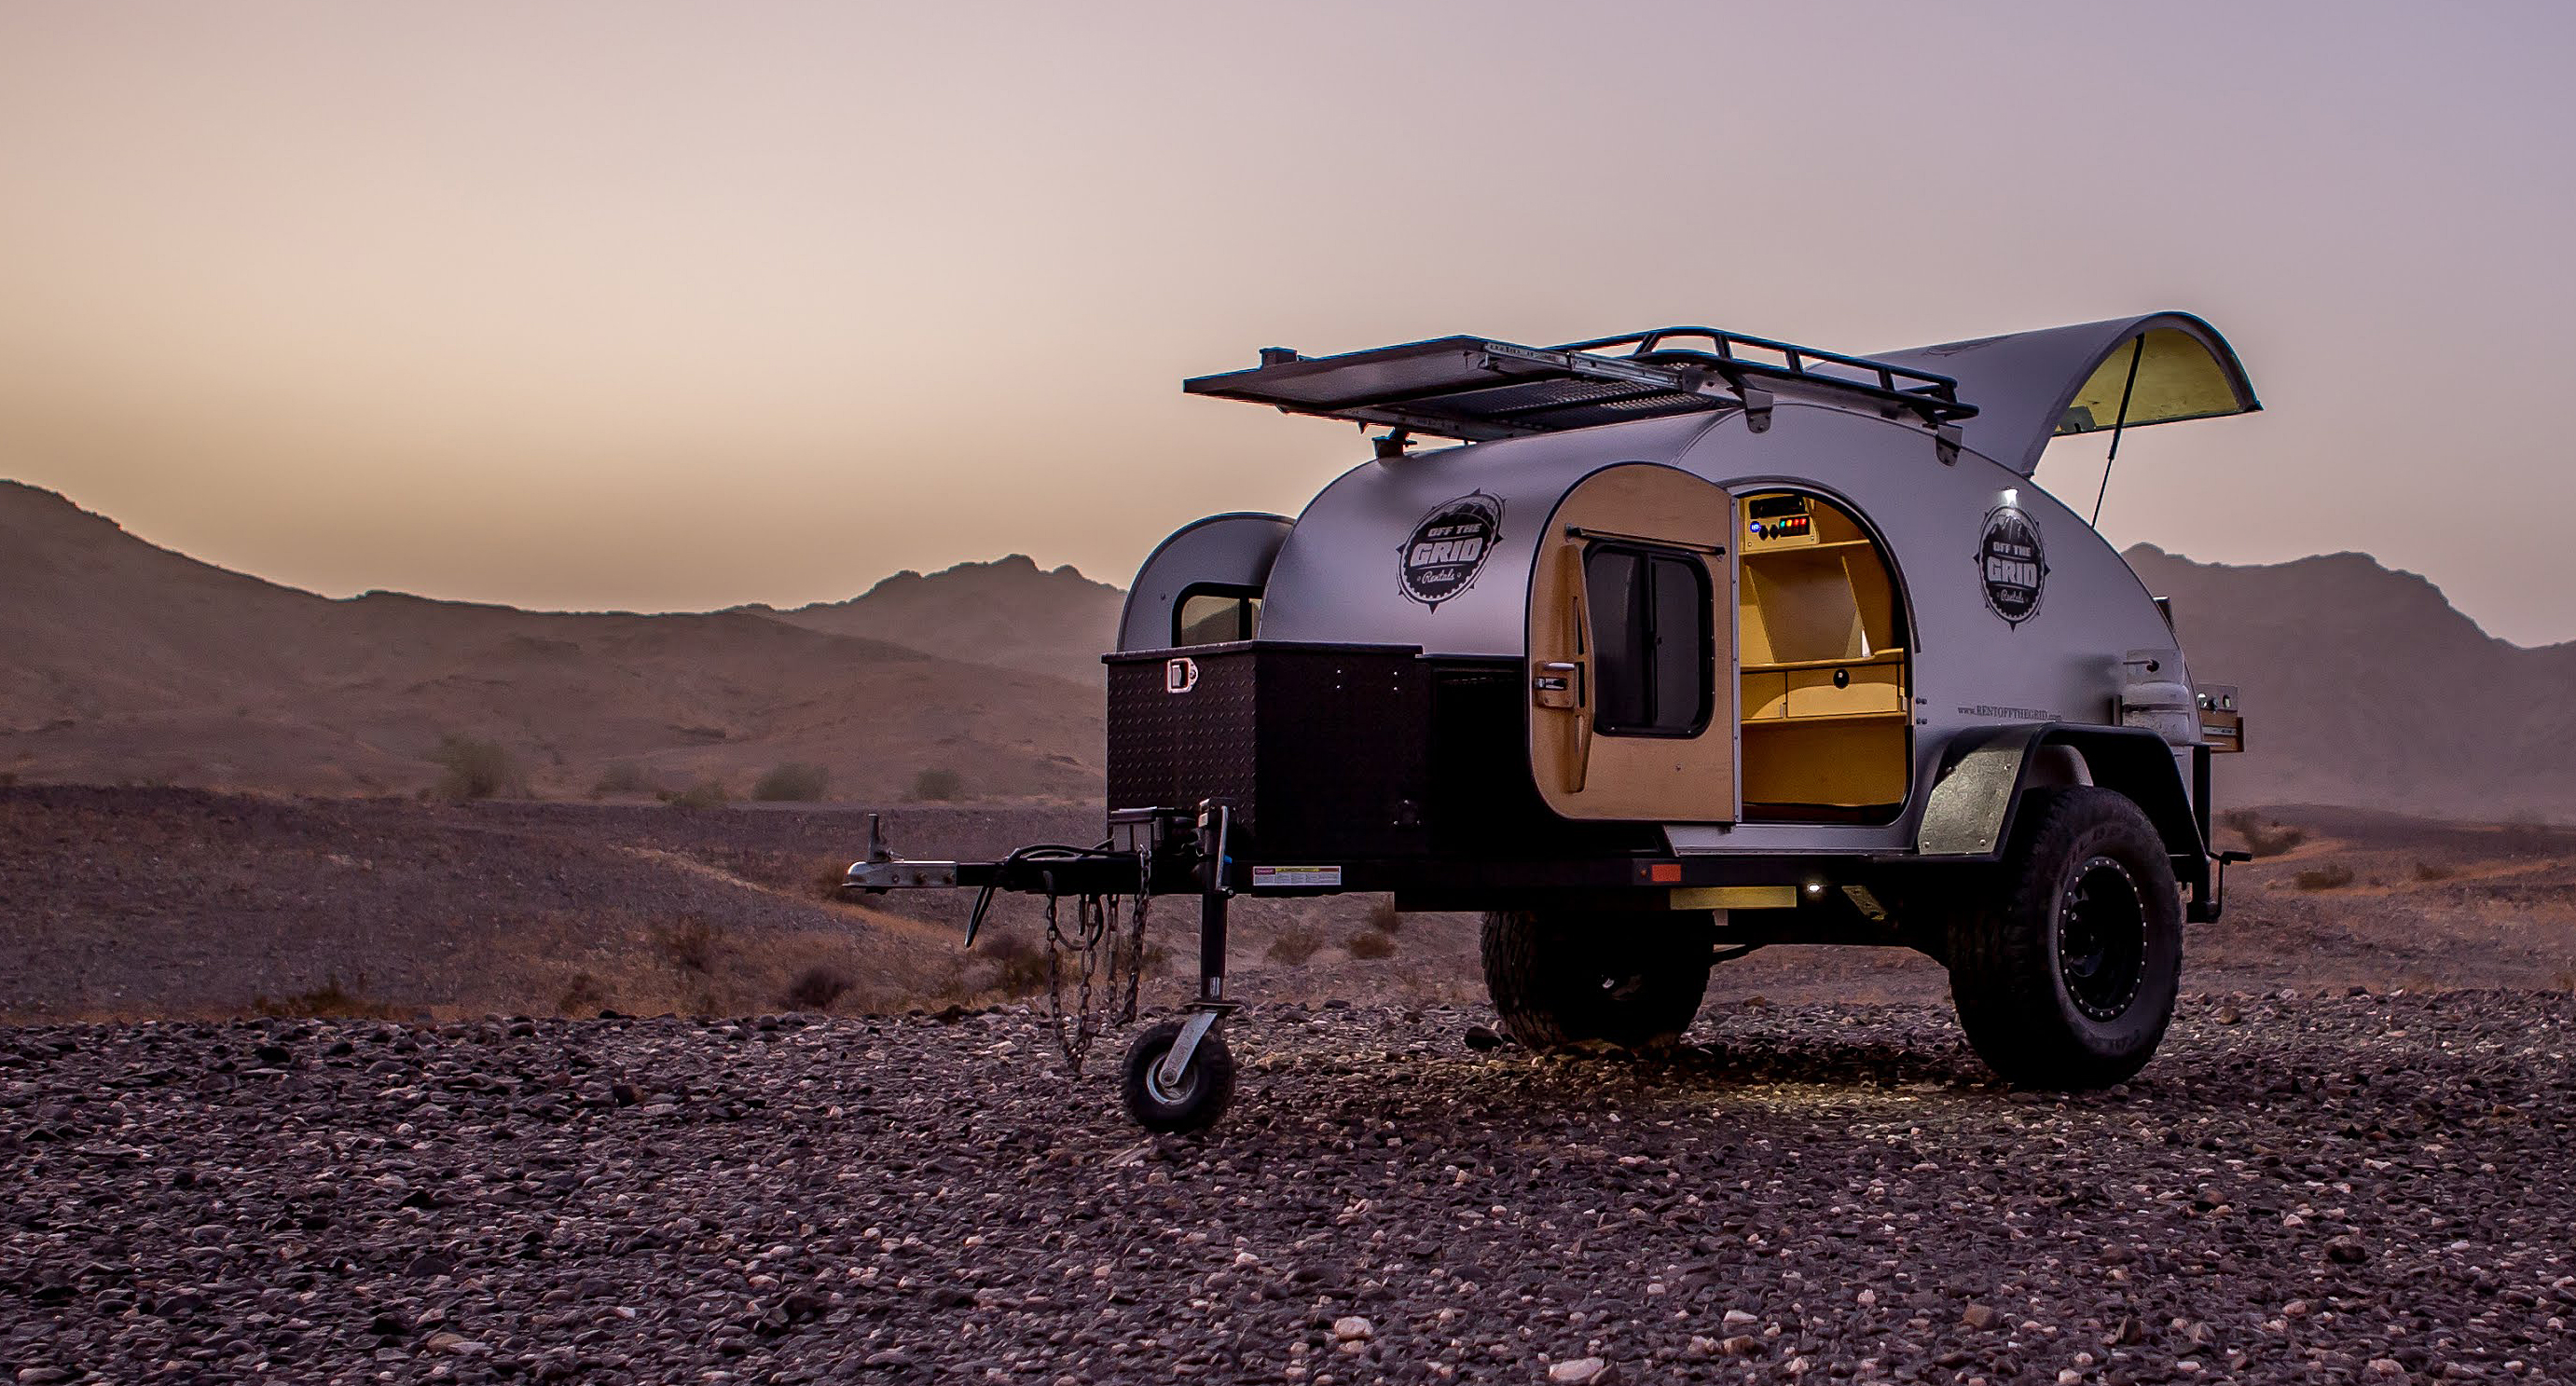 Off Road Teardrop Trailer & Teardrop Trailers Roof Top Tents and Off Road Camping Equipment ...